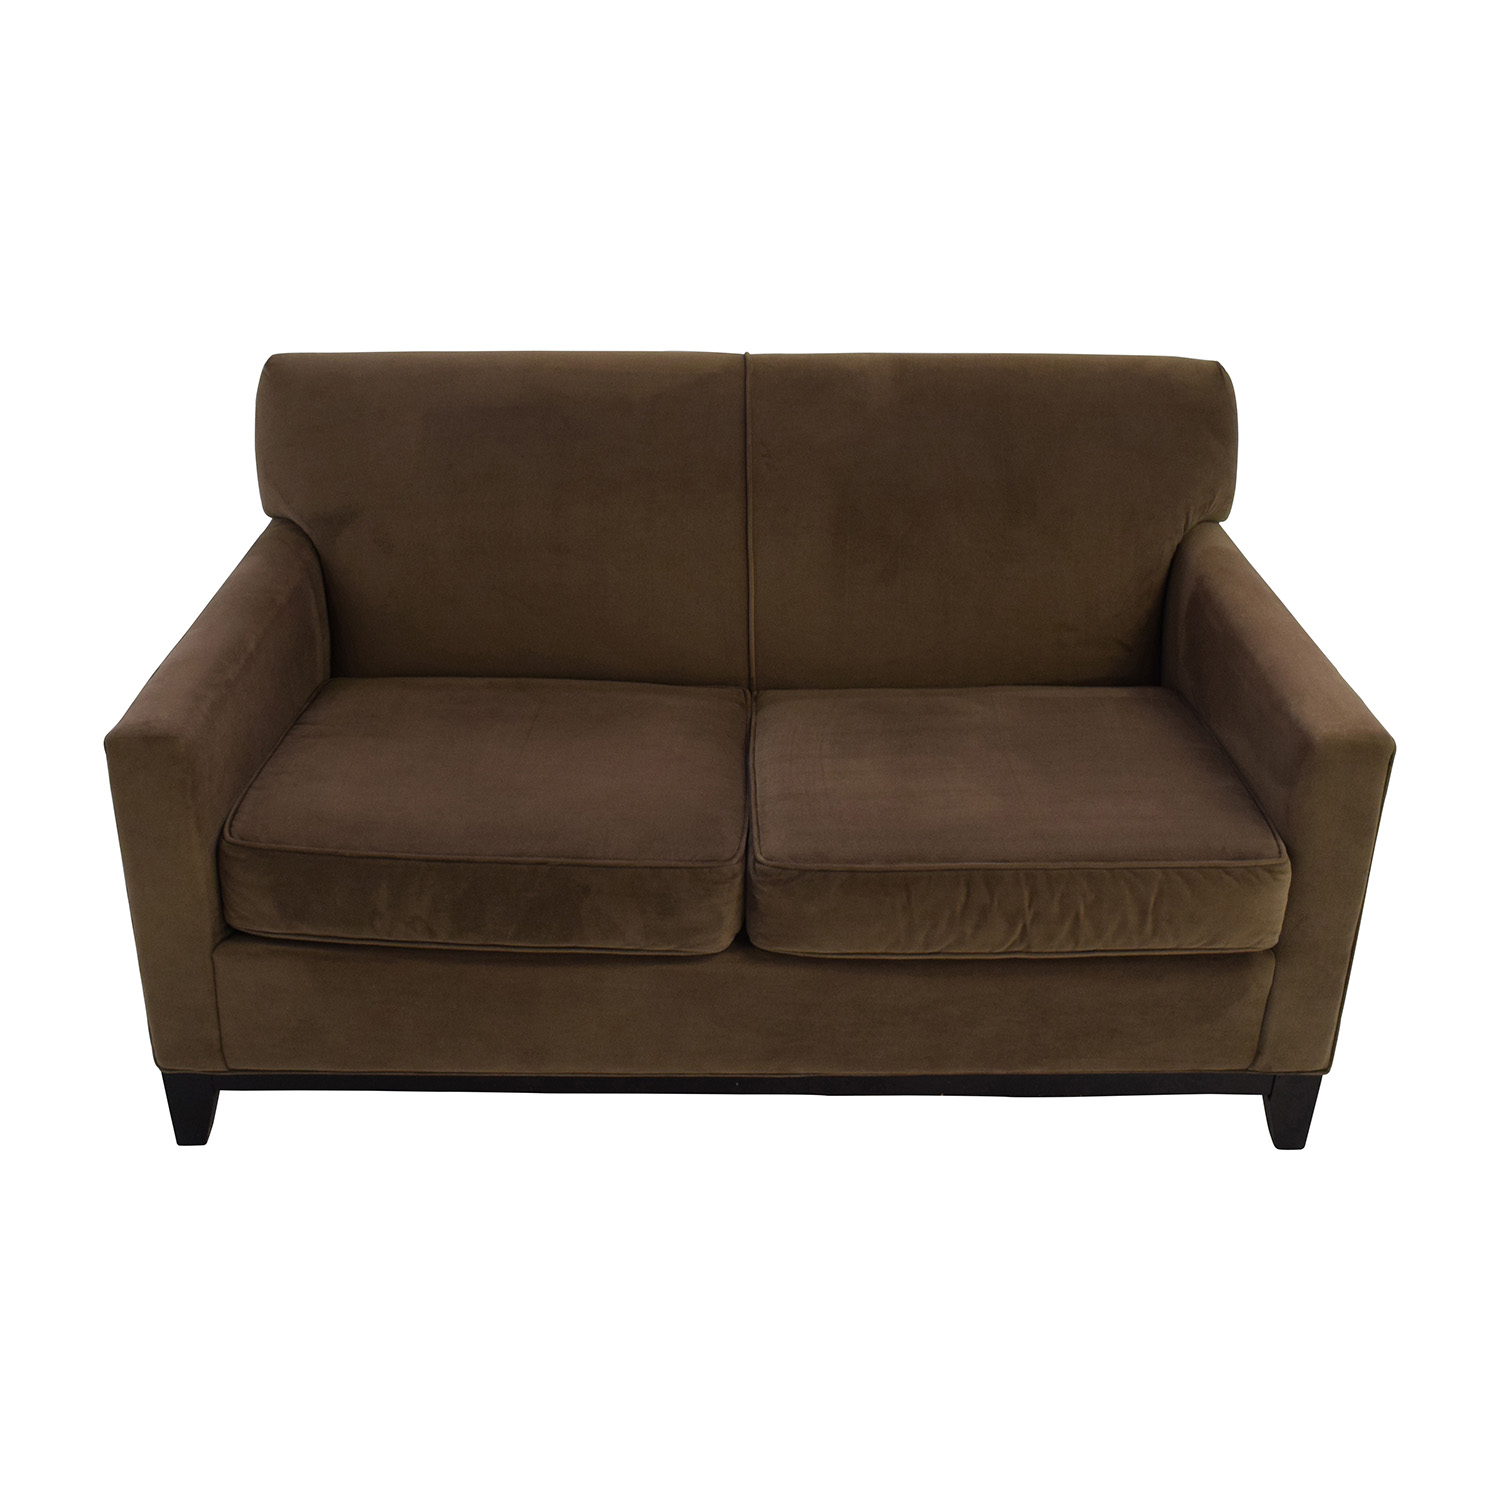 Exceptionnel Raymour And Flanigan Raymour And Flanigan Parker Tan Loveseat Price